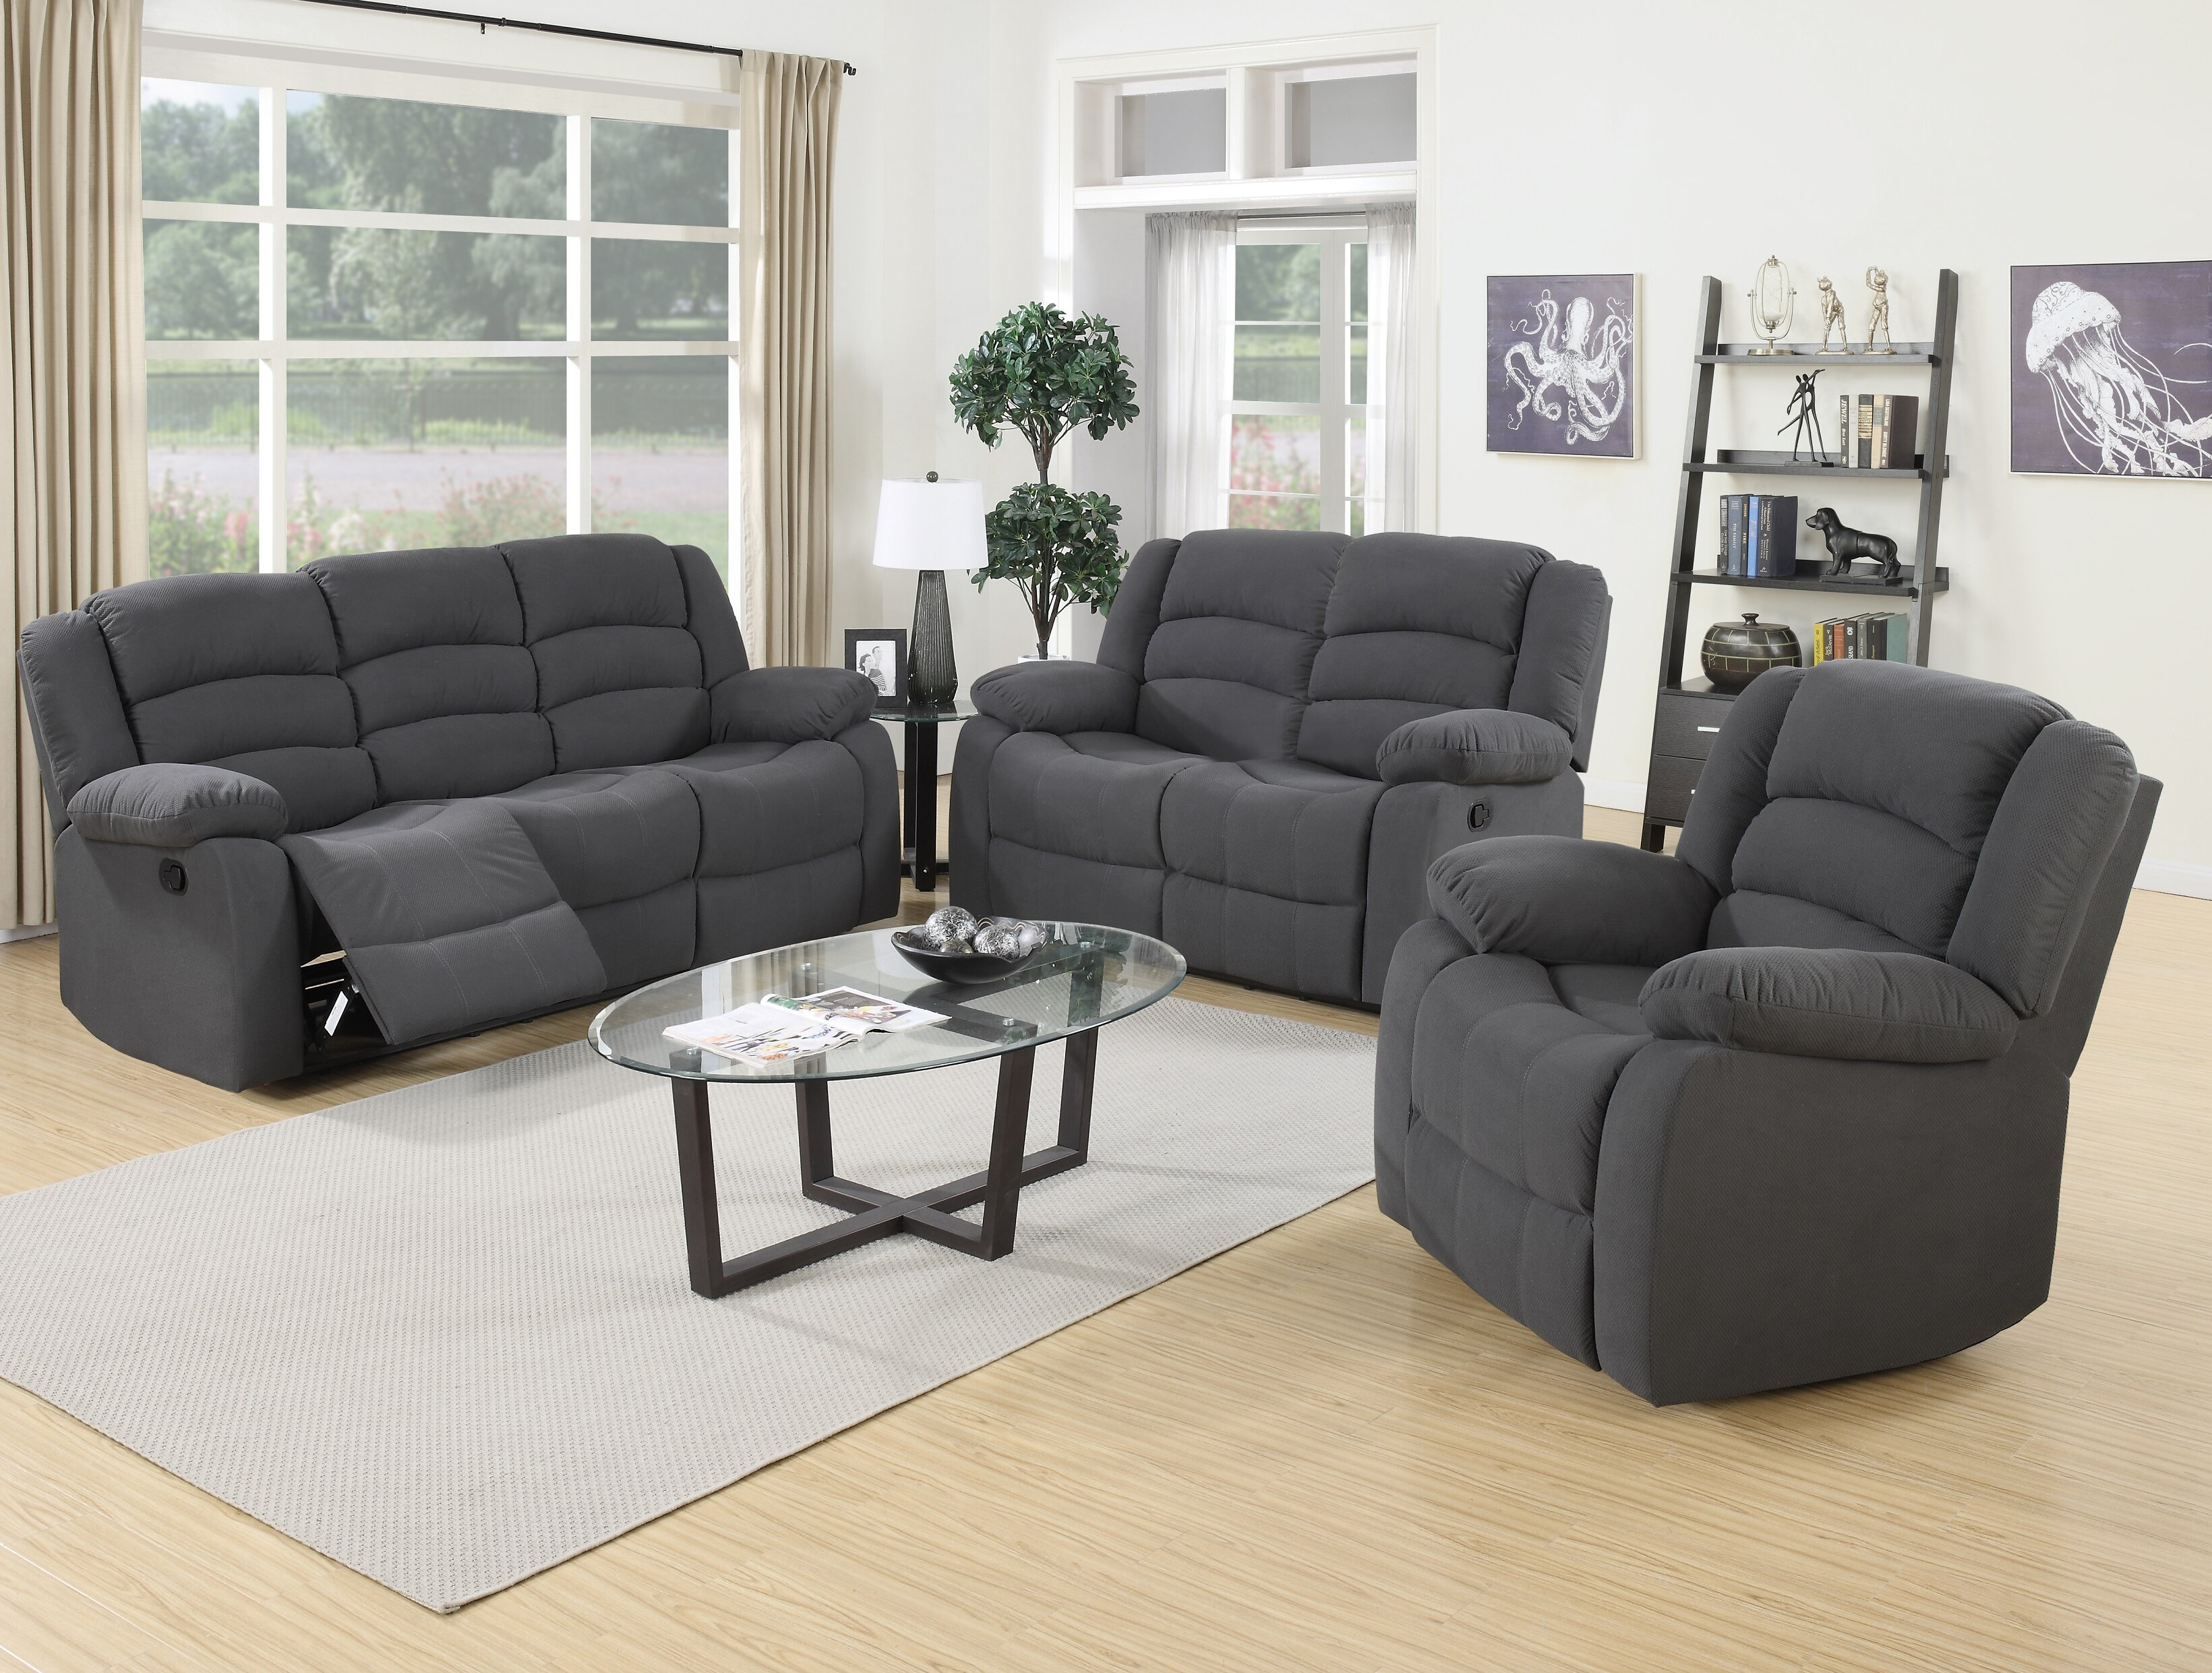 Bon Red Barrel Studio Mayflower Reclining 3 Piece Living Room Set U0026 Reviews |  Wayfair